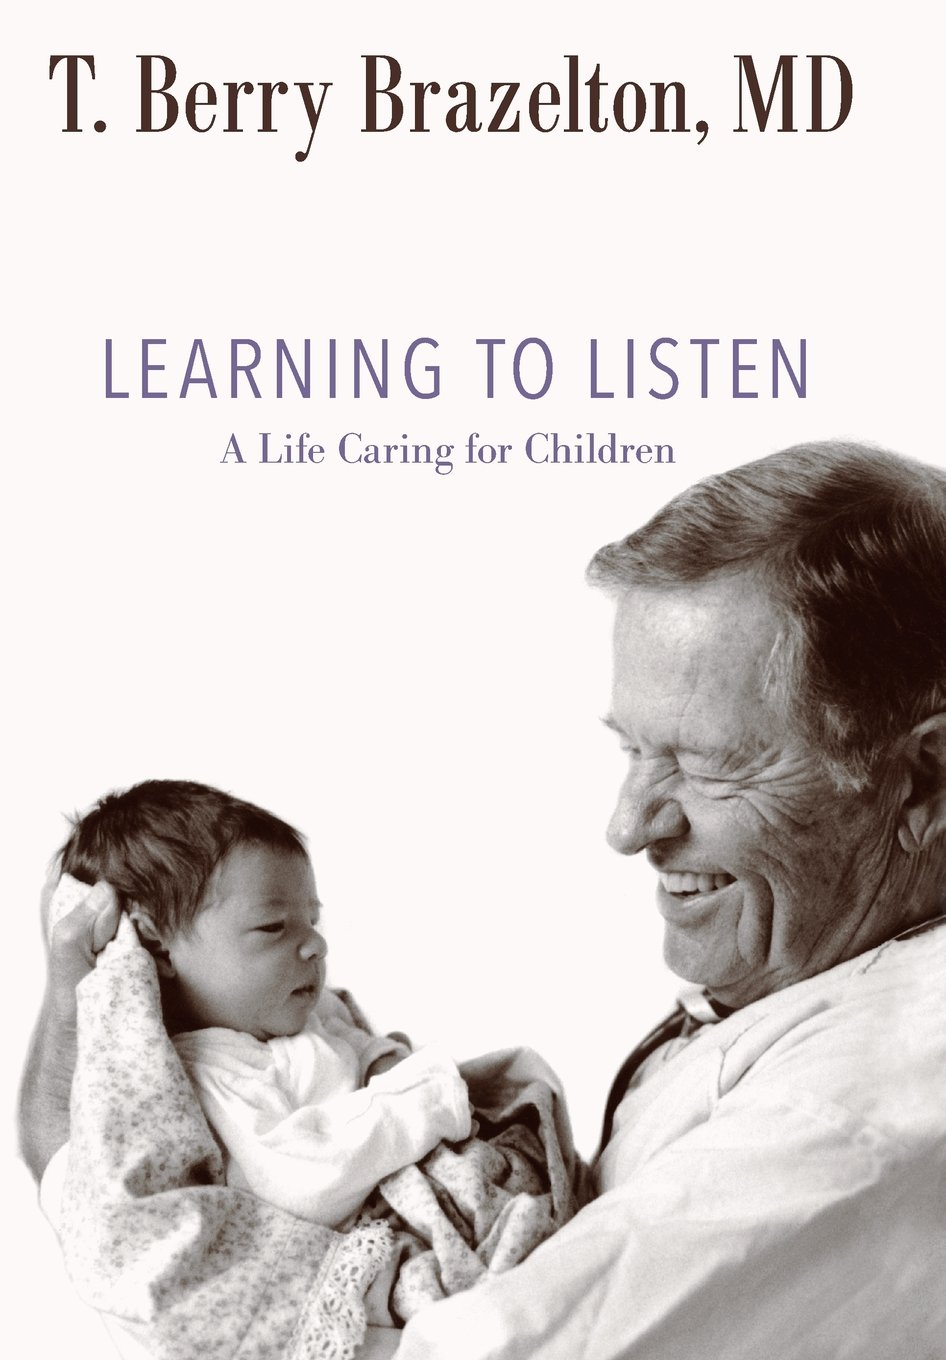 Download Learning to Listen: A Life Caring for Children (A Merloyd Lawrence Book) PDF